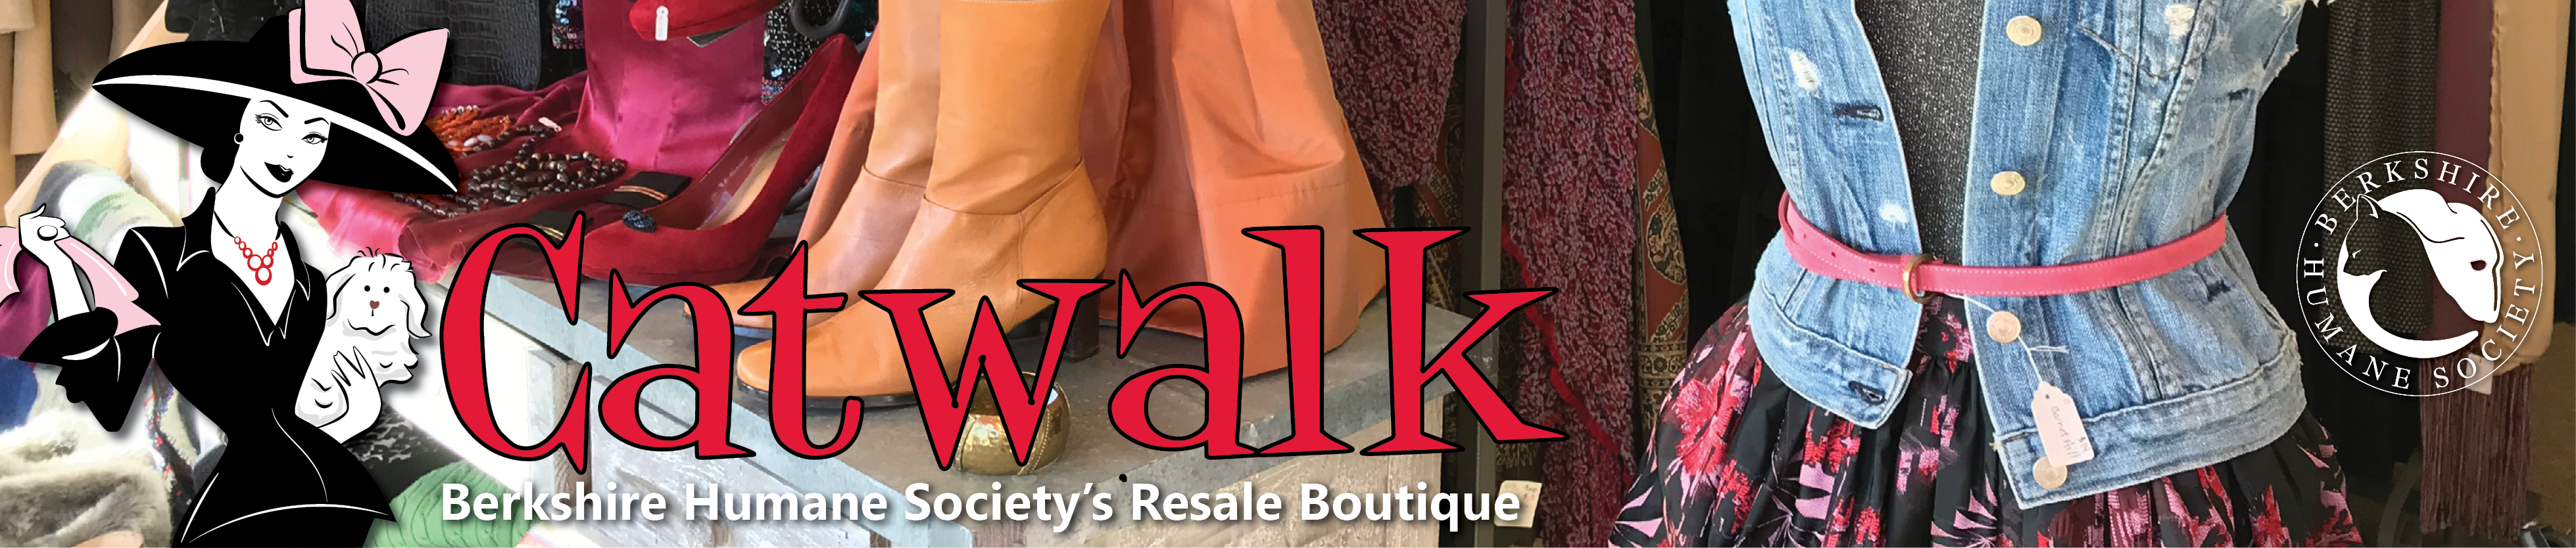 Catwalk Boutique